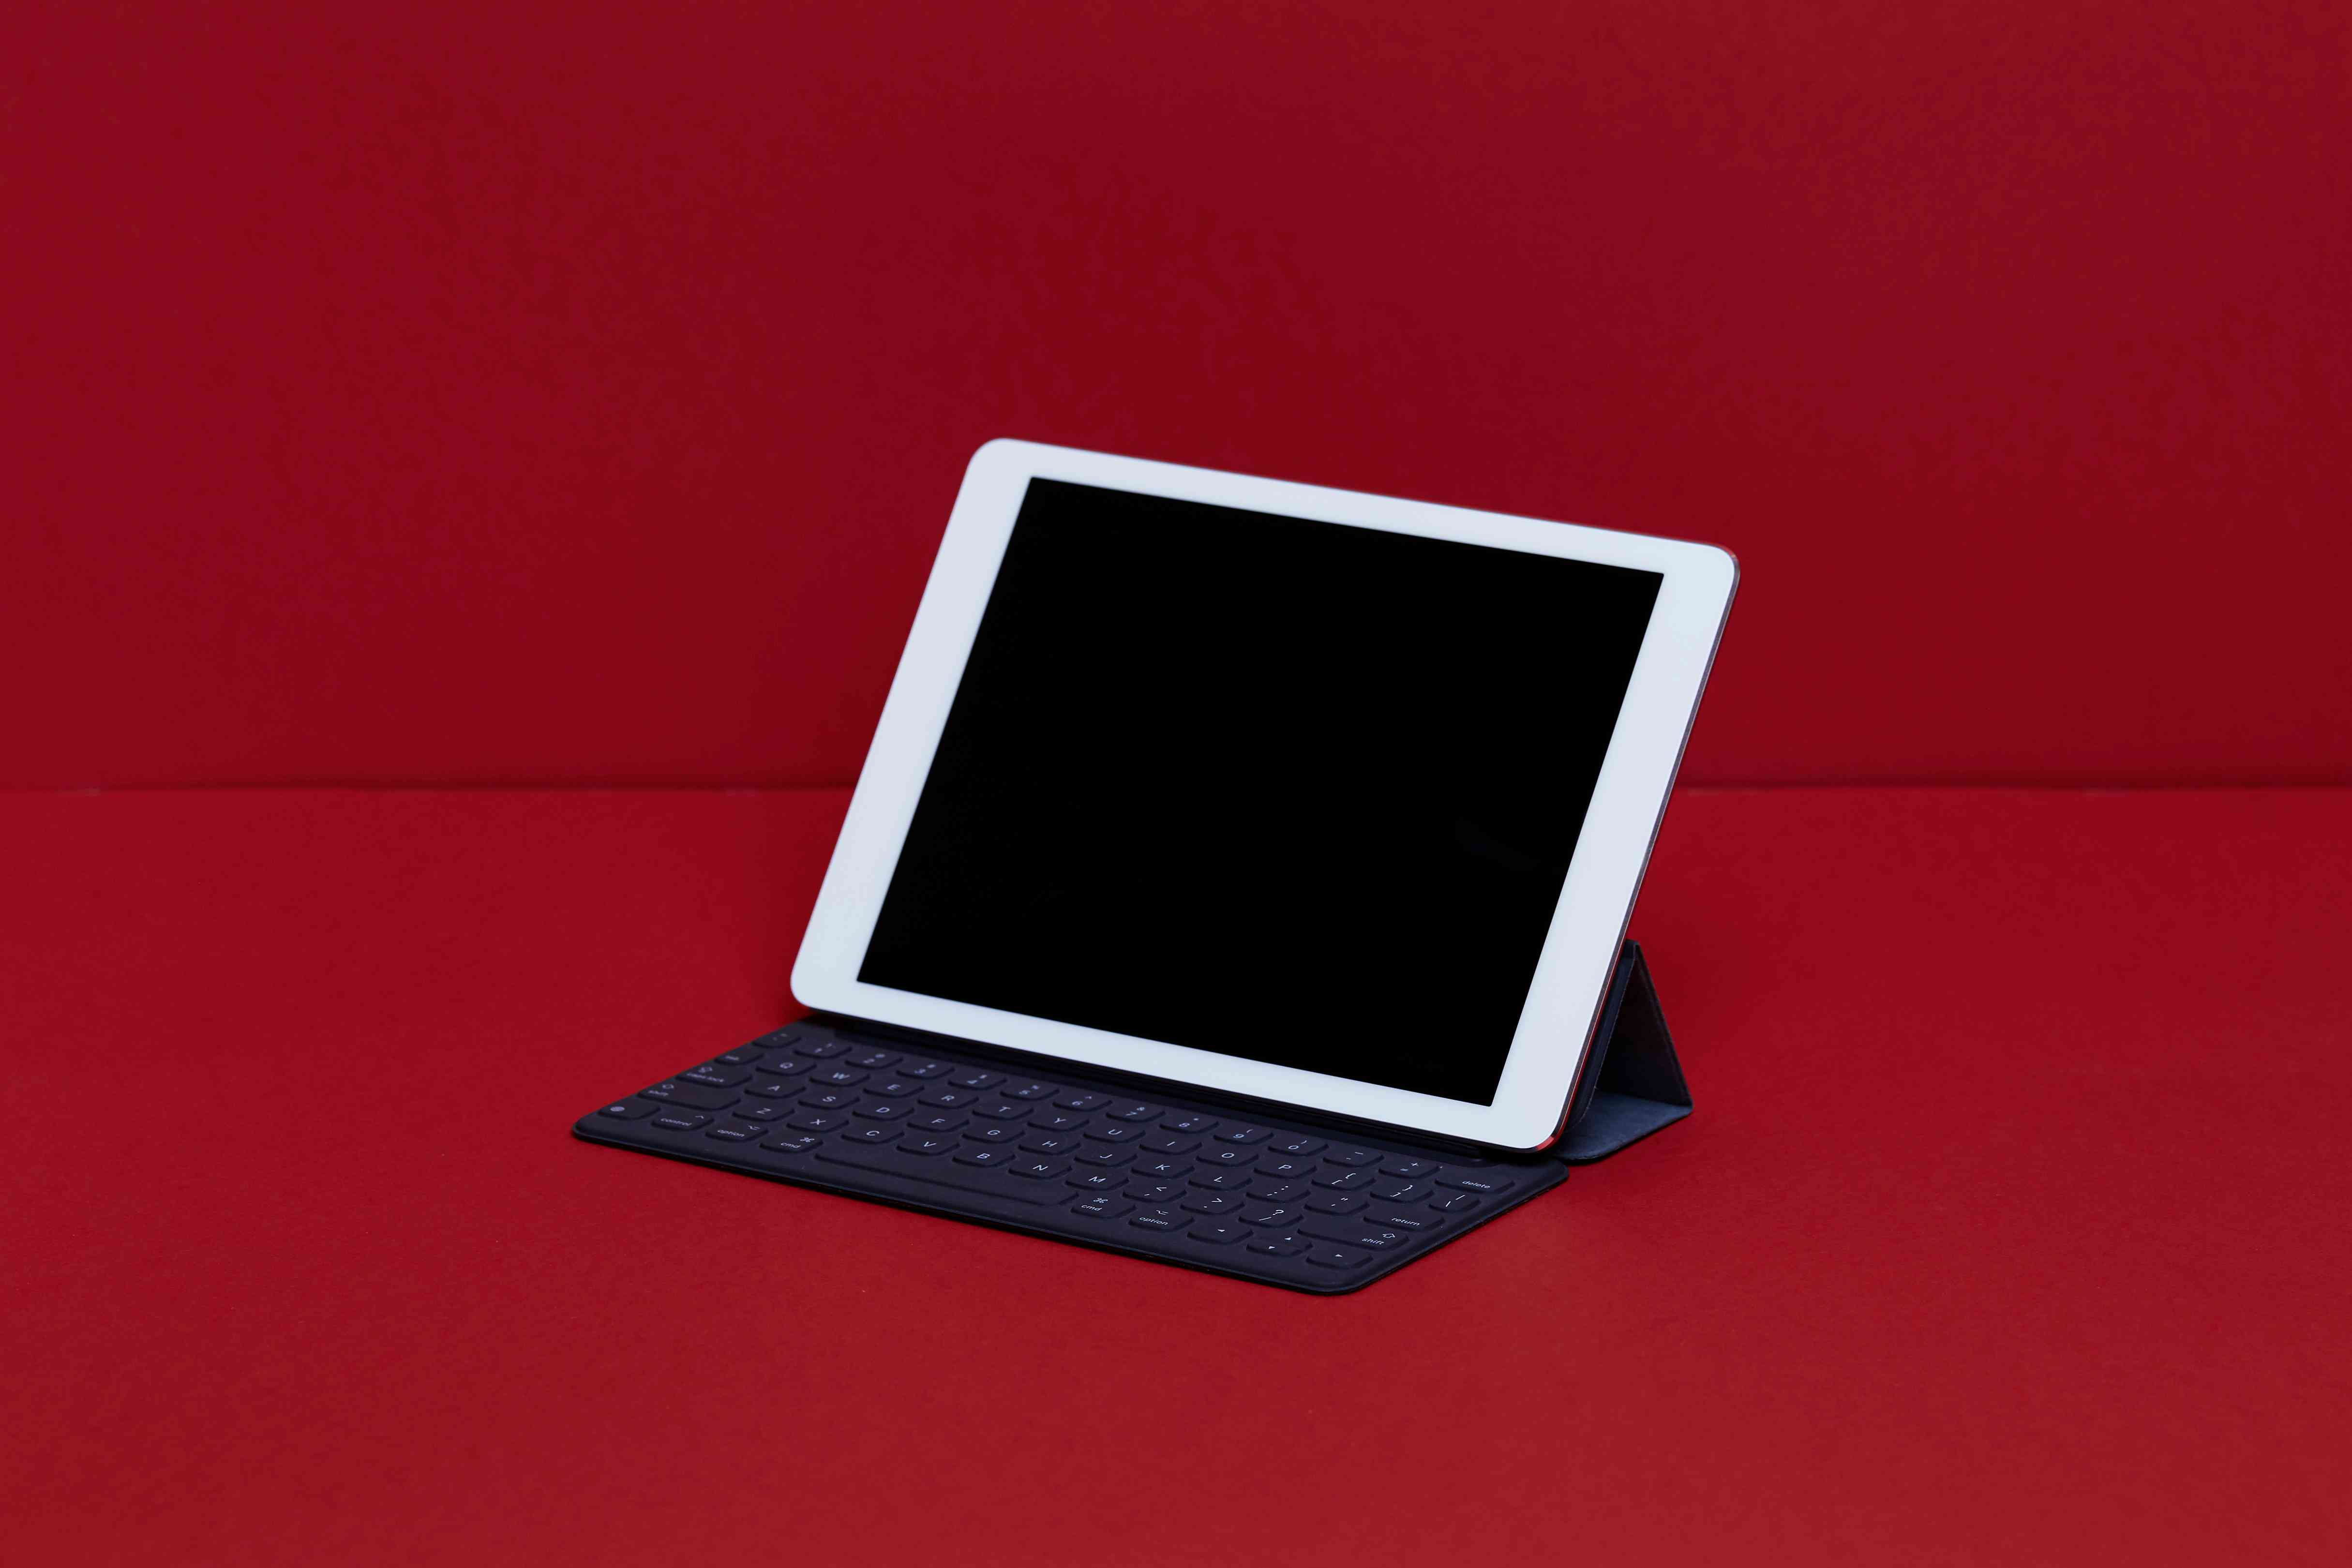 Close-Up Of Digital Tablet With Keyboard On Red Table